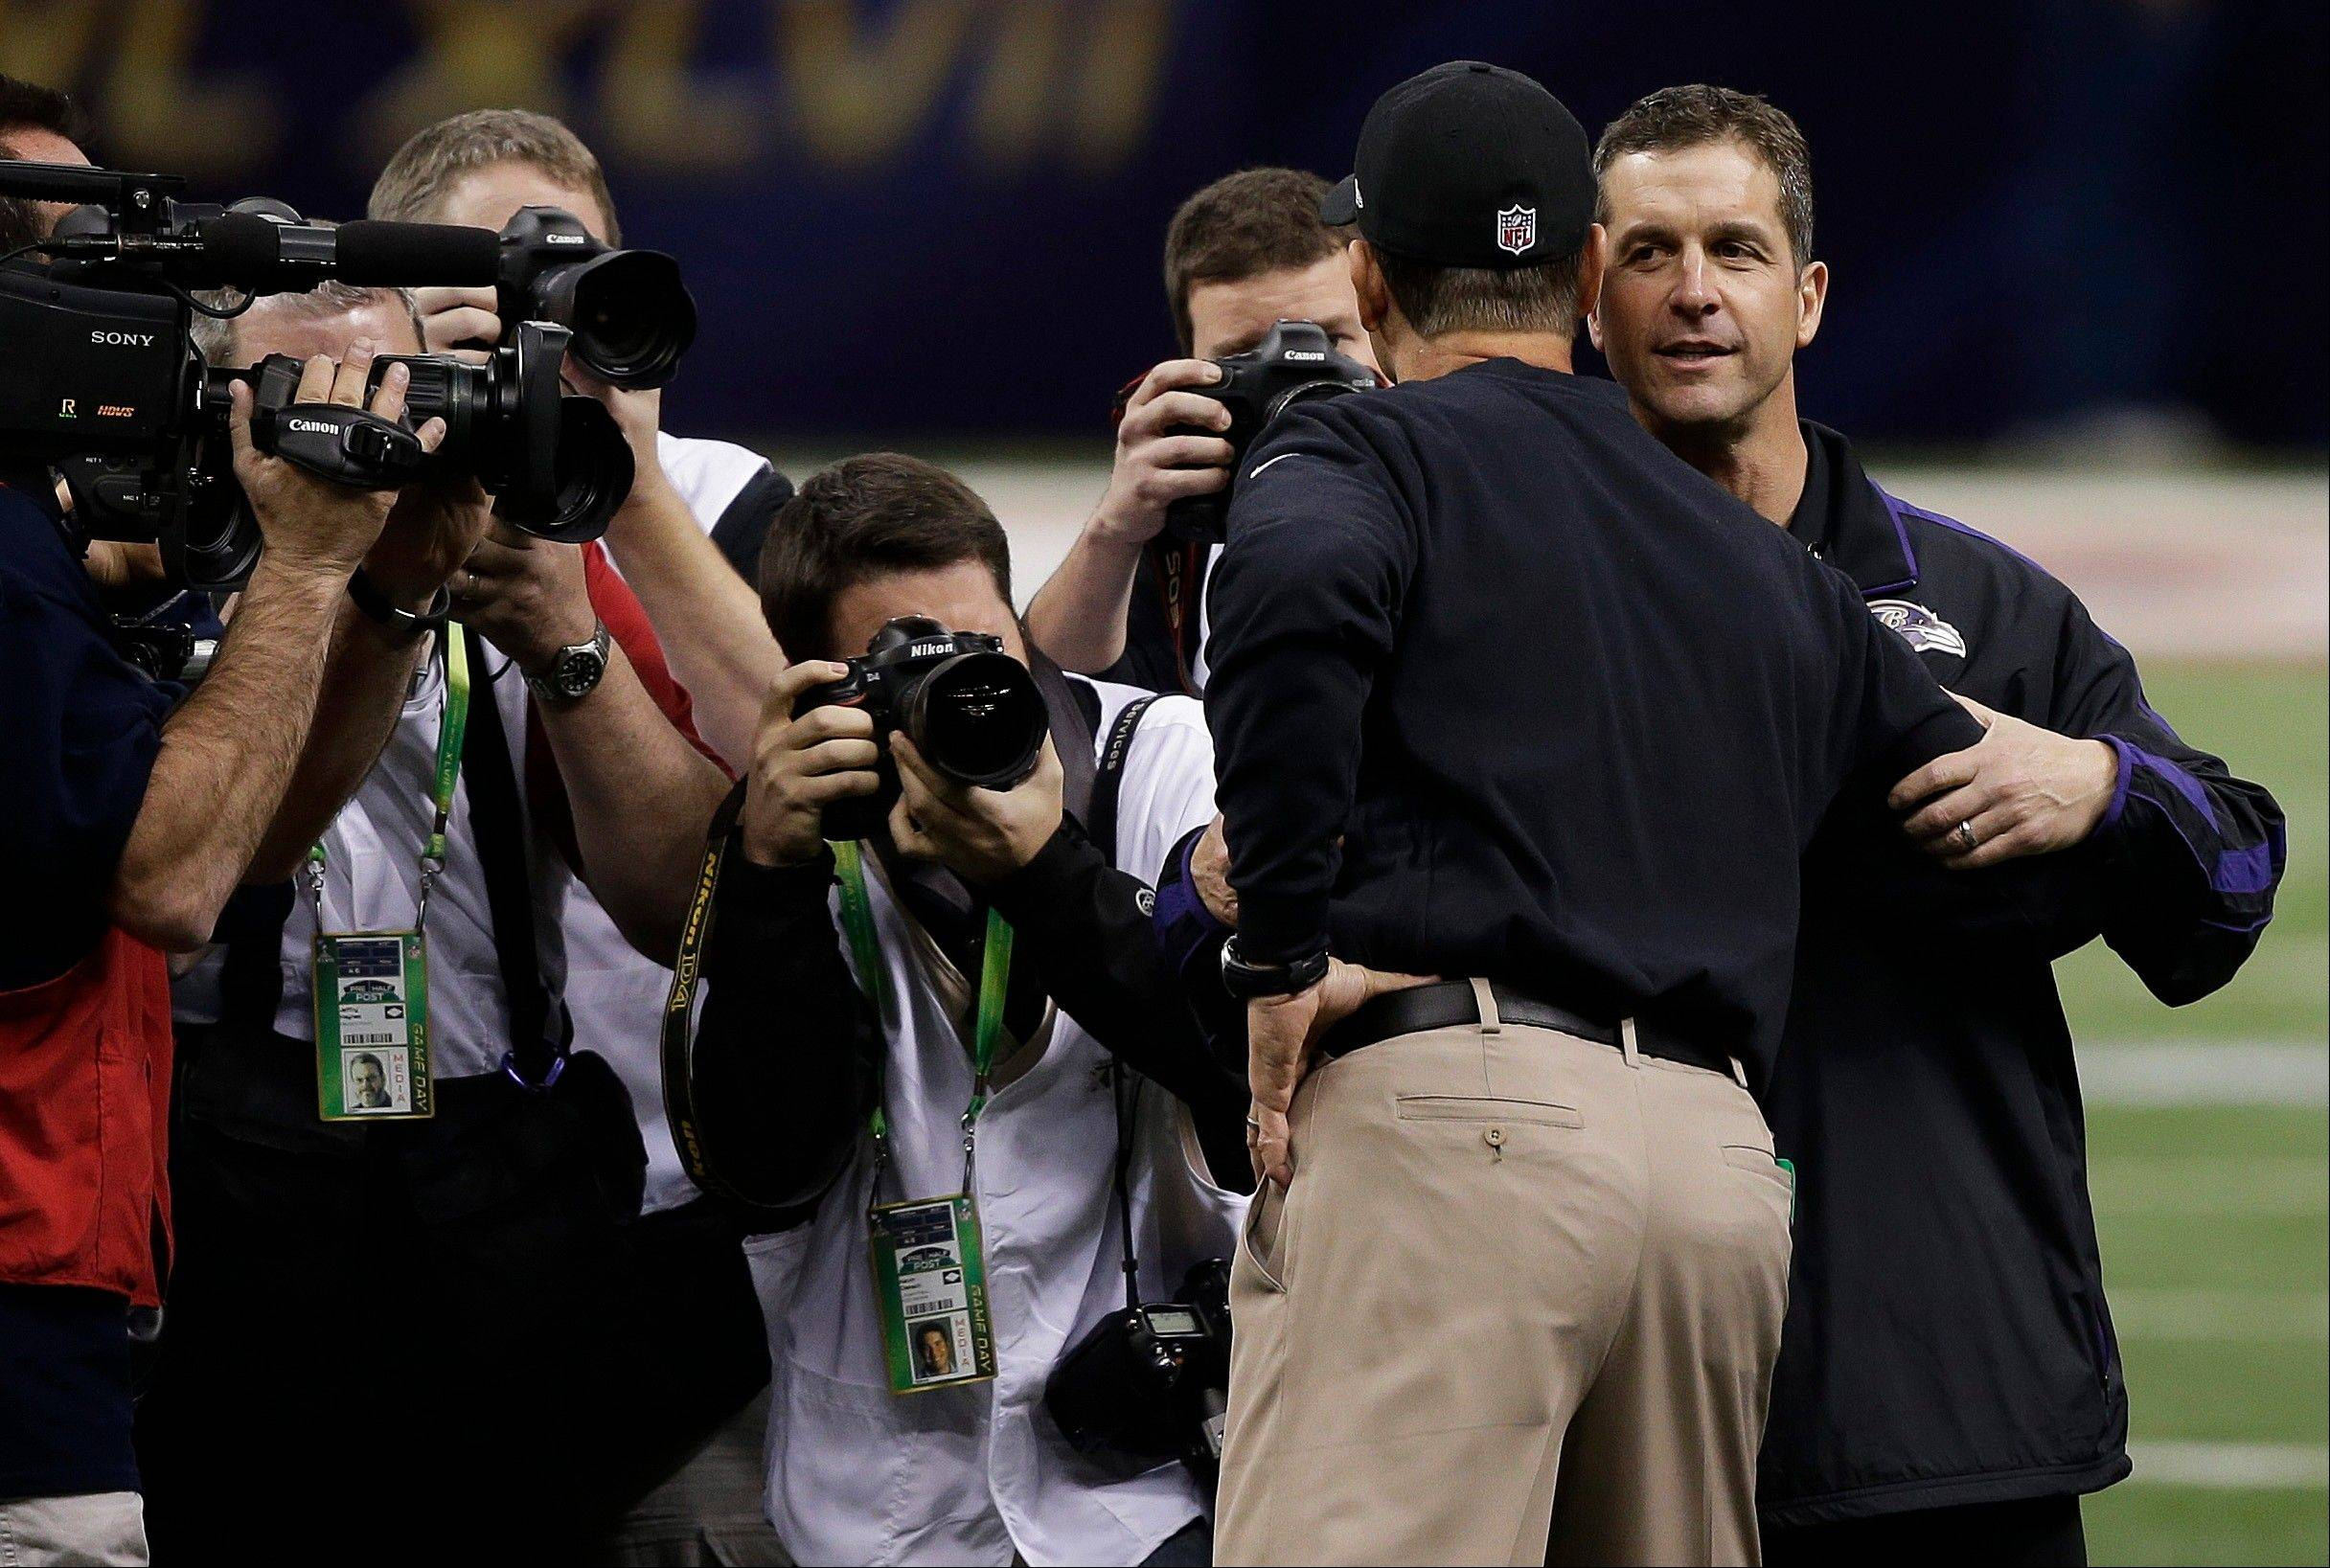 San Francisco 49ers head coach Jim Harbaugh, left, embraces his brother Baltimore Ravens head coach John Harbaugh before the NFL Super Bowl XLVII football game.